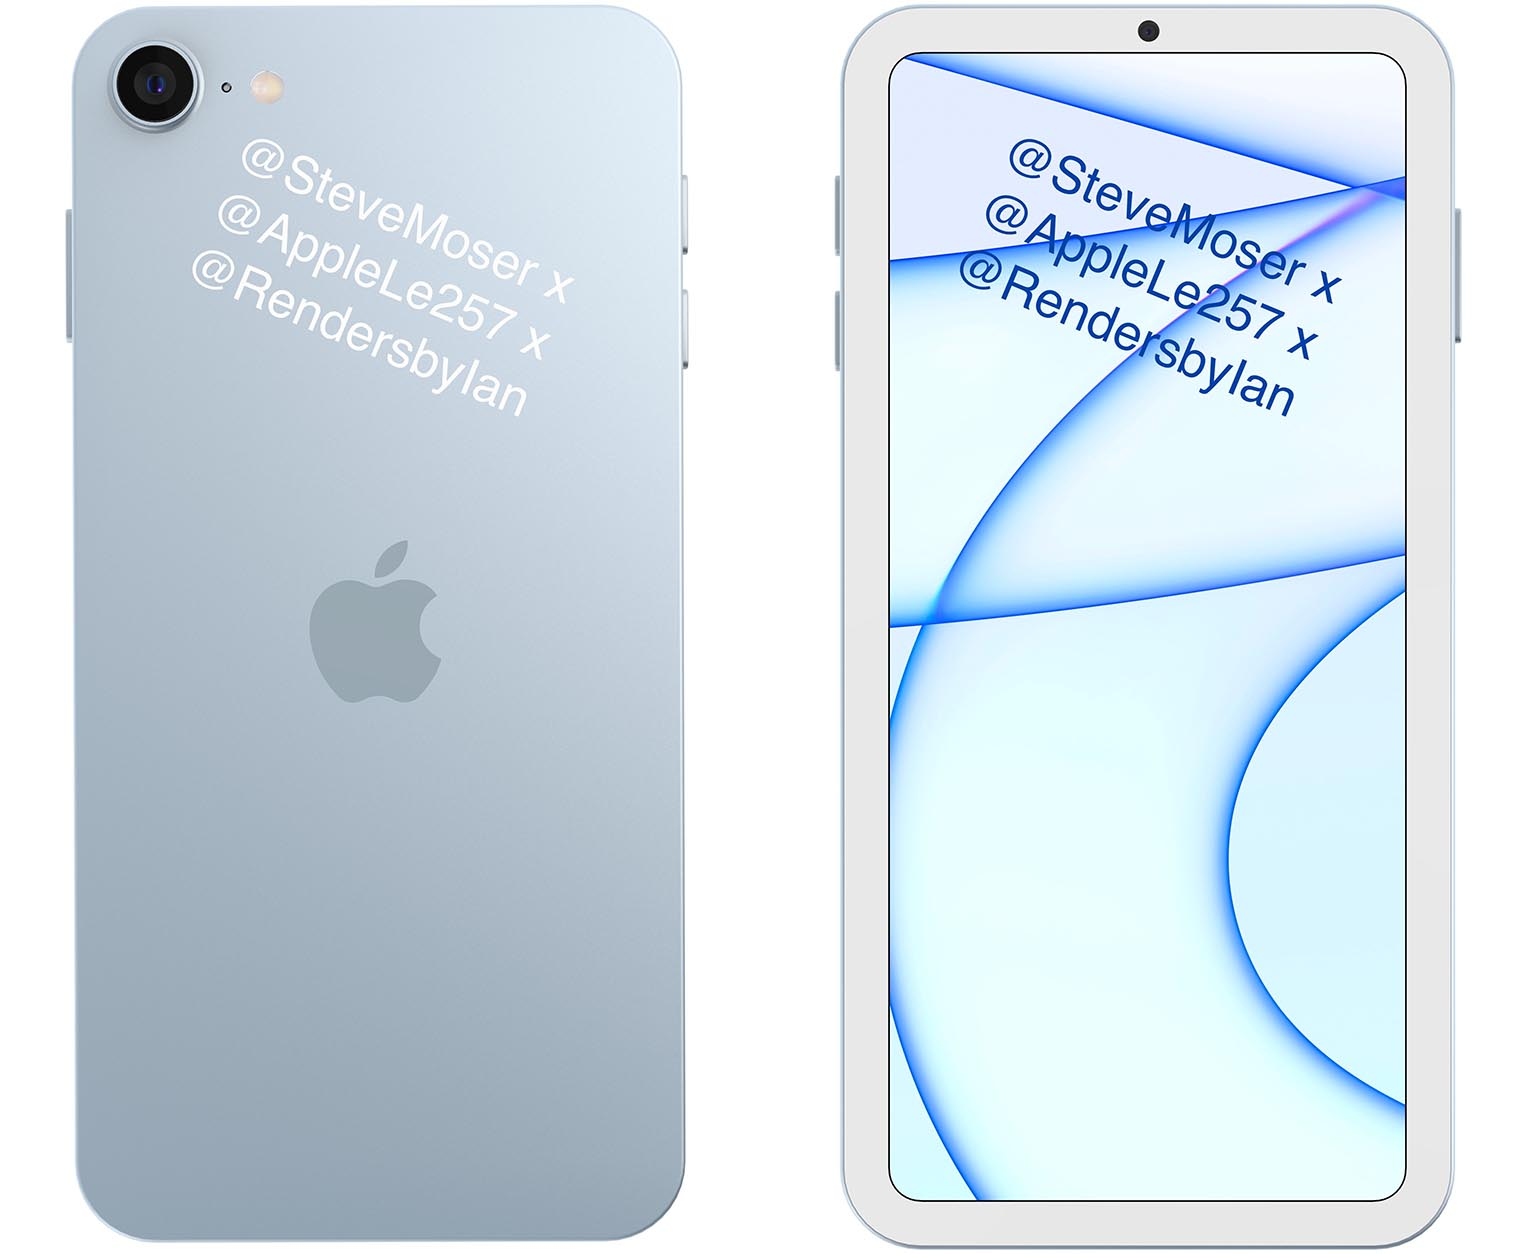 Concept iPod touch 2021